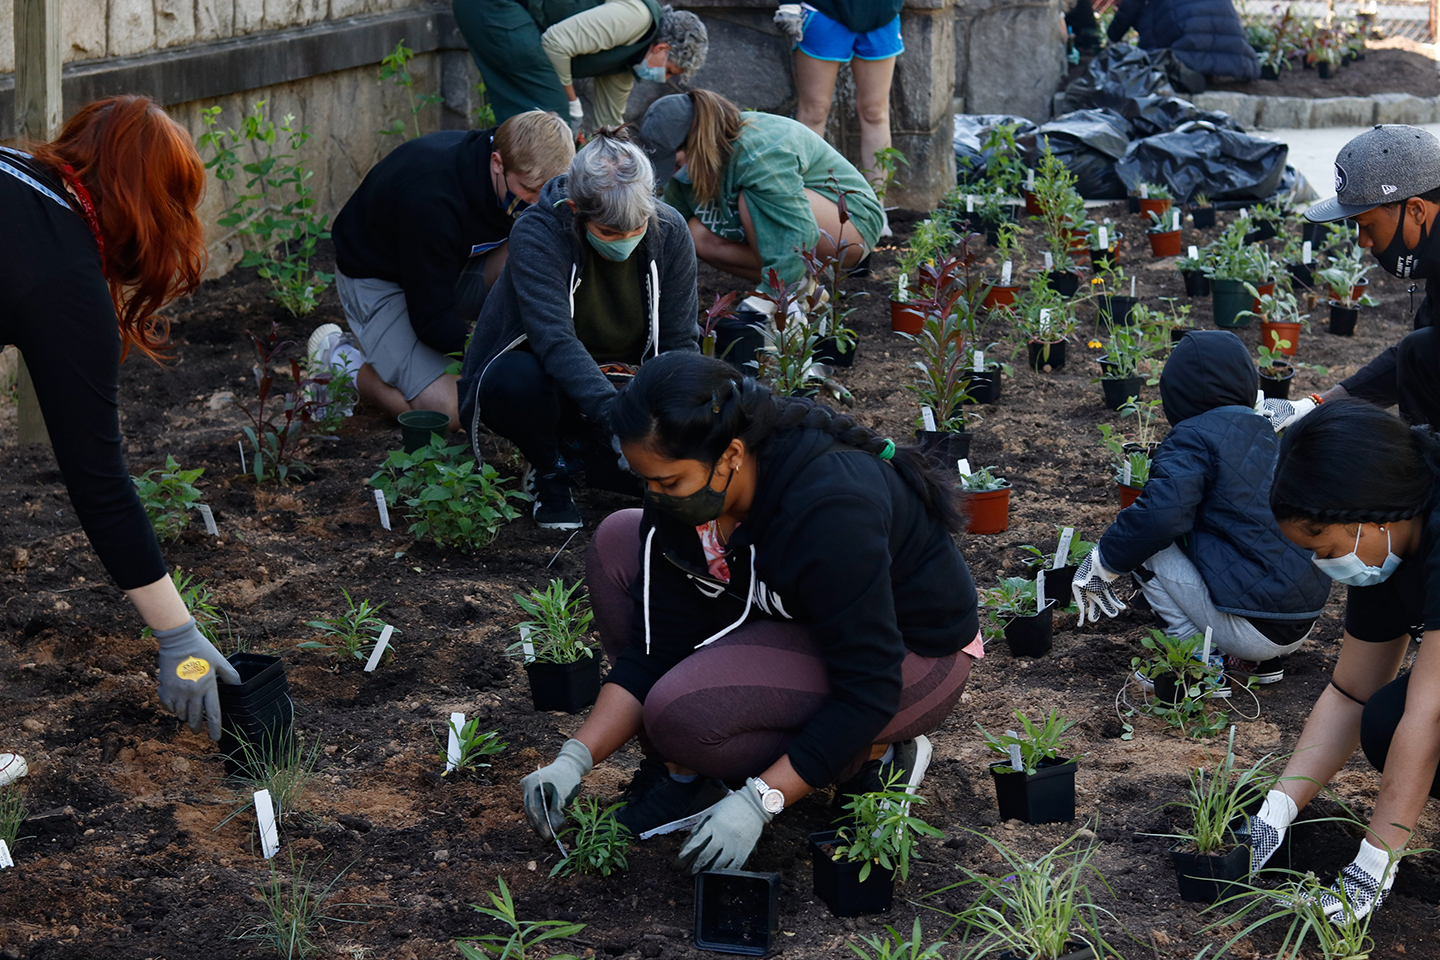 People planting pollinator plants in the ground